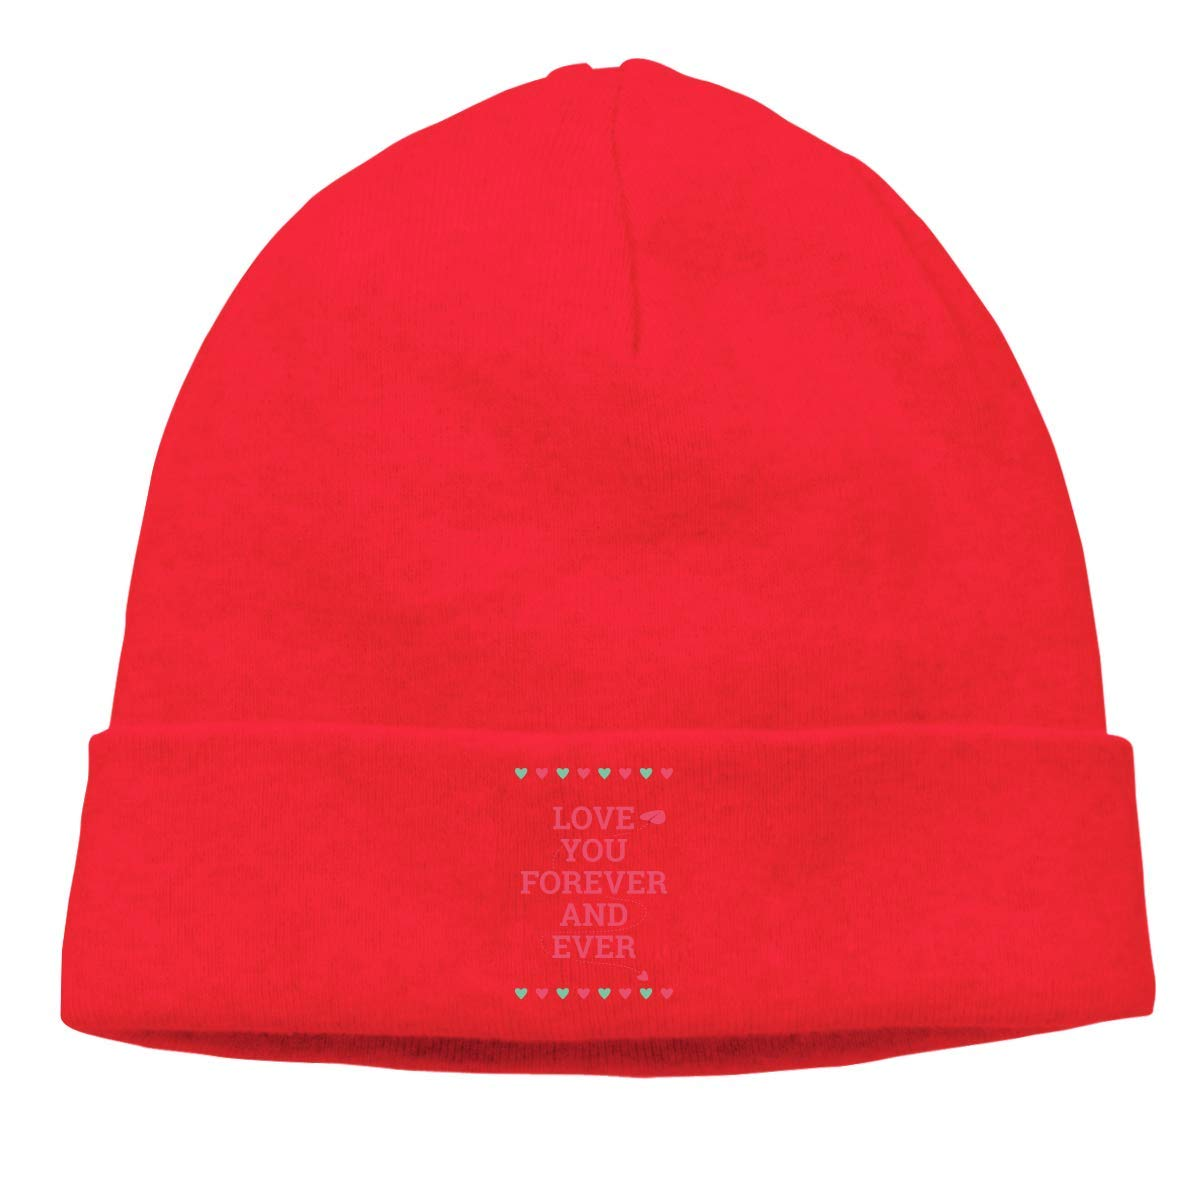 Adult Skull Cap Beanie Love You Forever Knitted Hat Headwear Winter Warm Hip-hop Hat